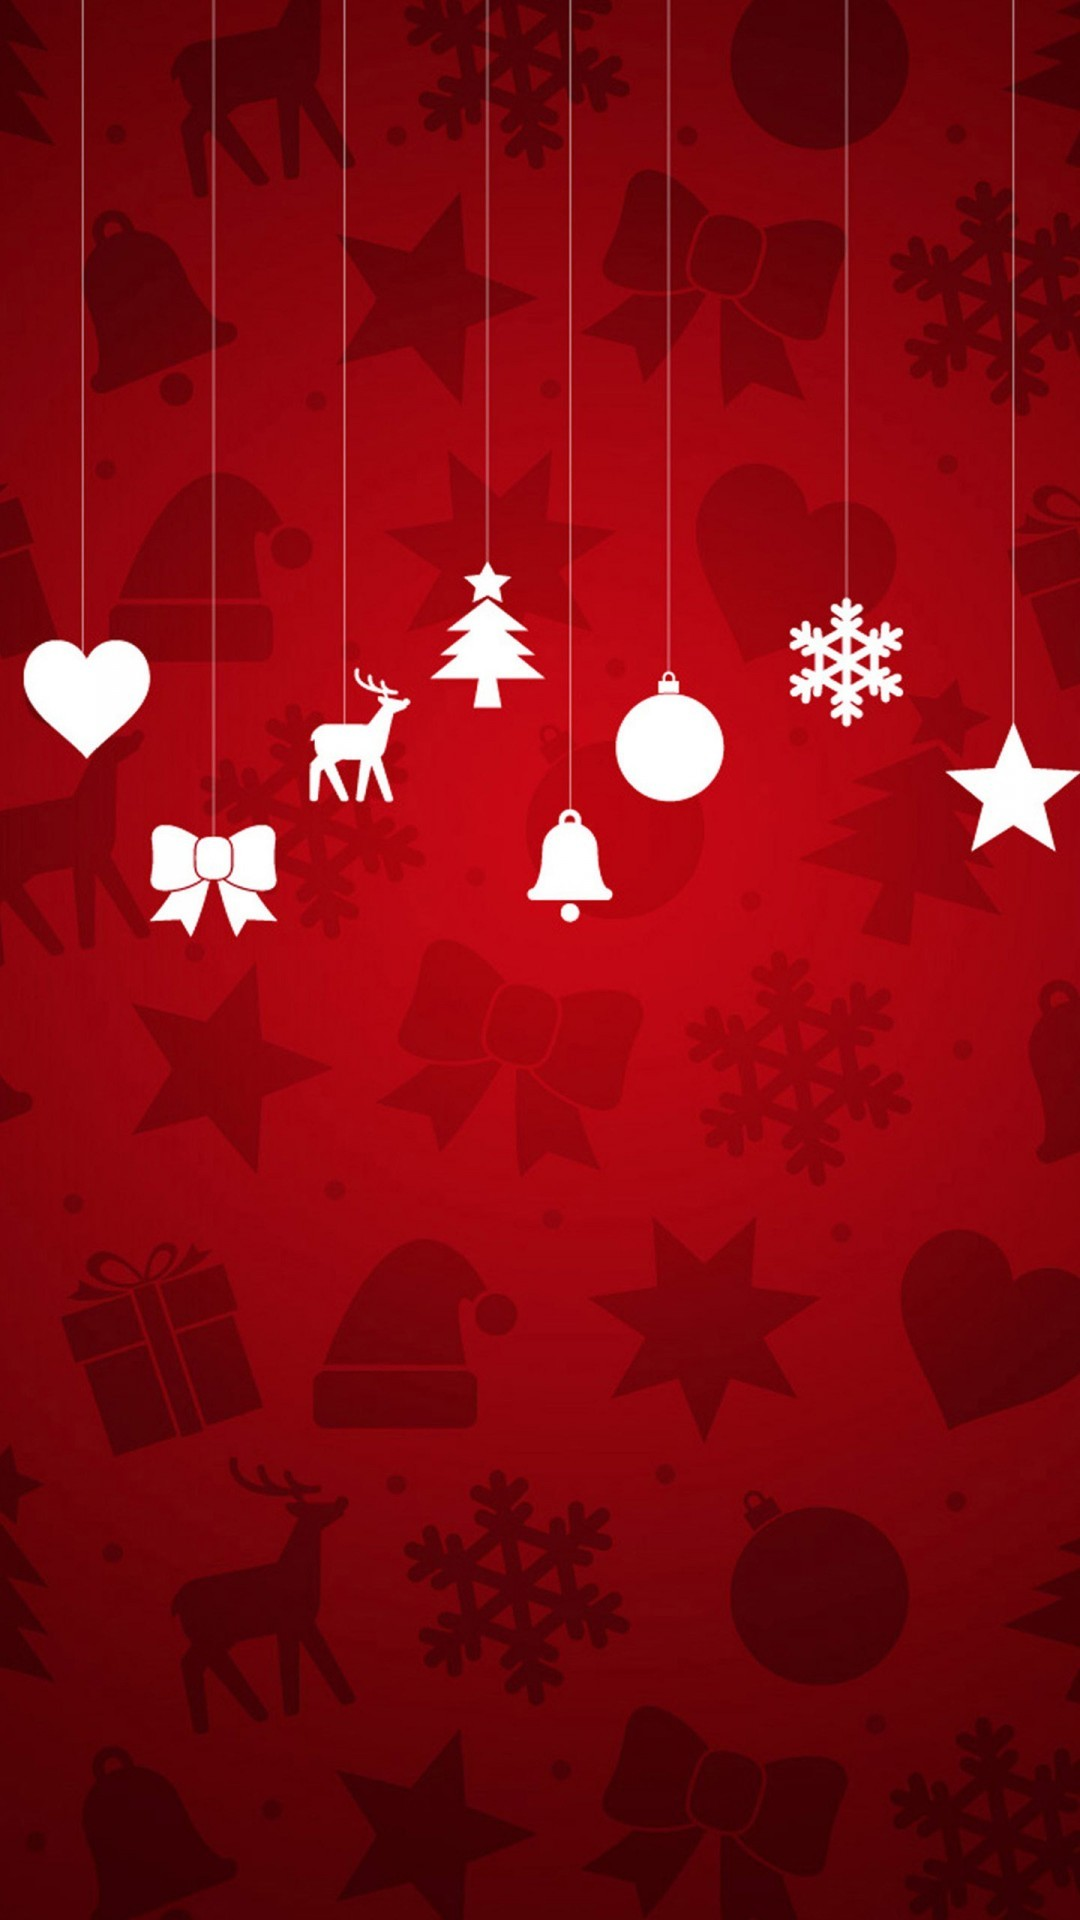 Christmas HD Wallpapers for iPhone 6 Plus | Wallpapers.Pictures